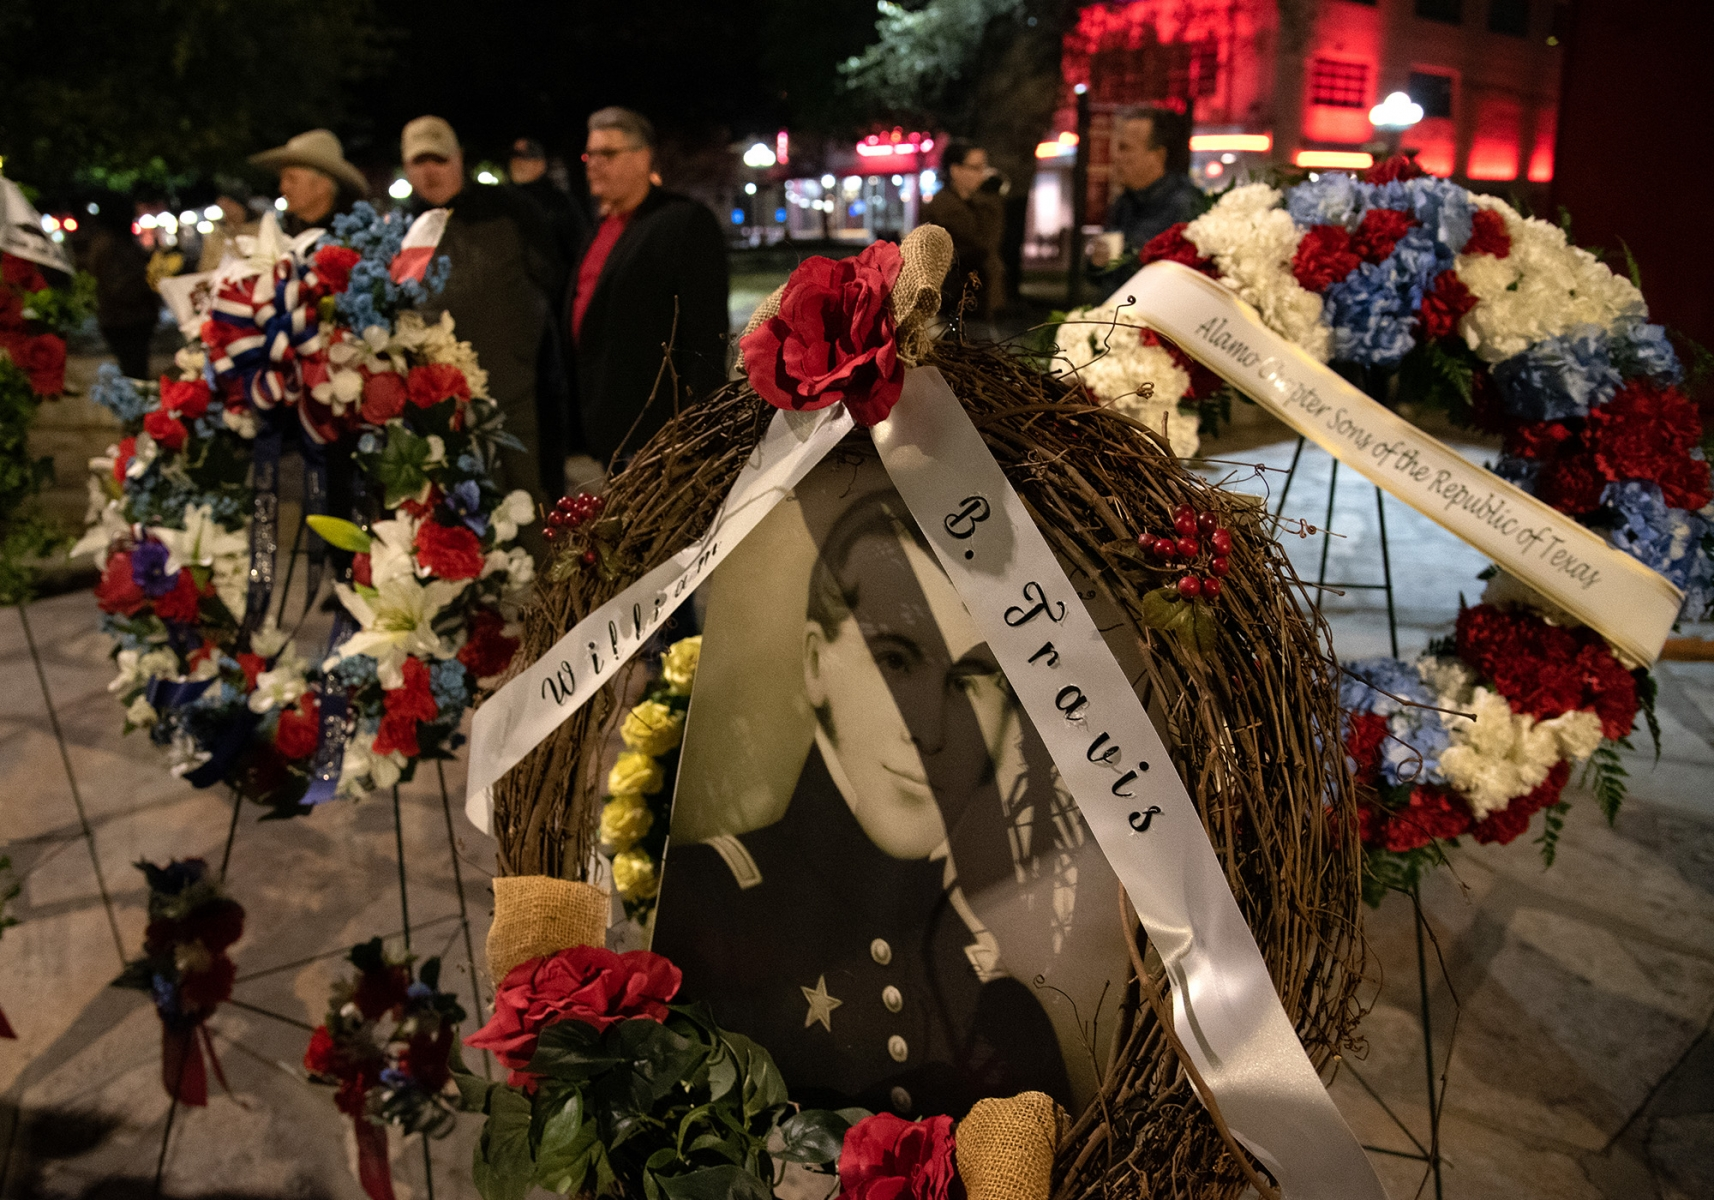 Wreaths honoring Alamo defenders are placed in front of the Alamo during the Dawn at the Alamo ceremony March 6, 2019, at Alamo Plaza.